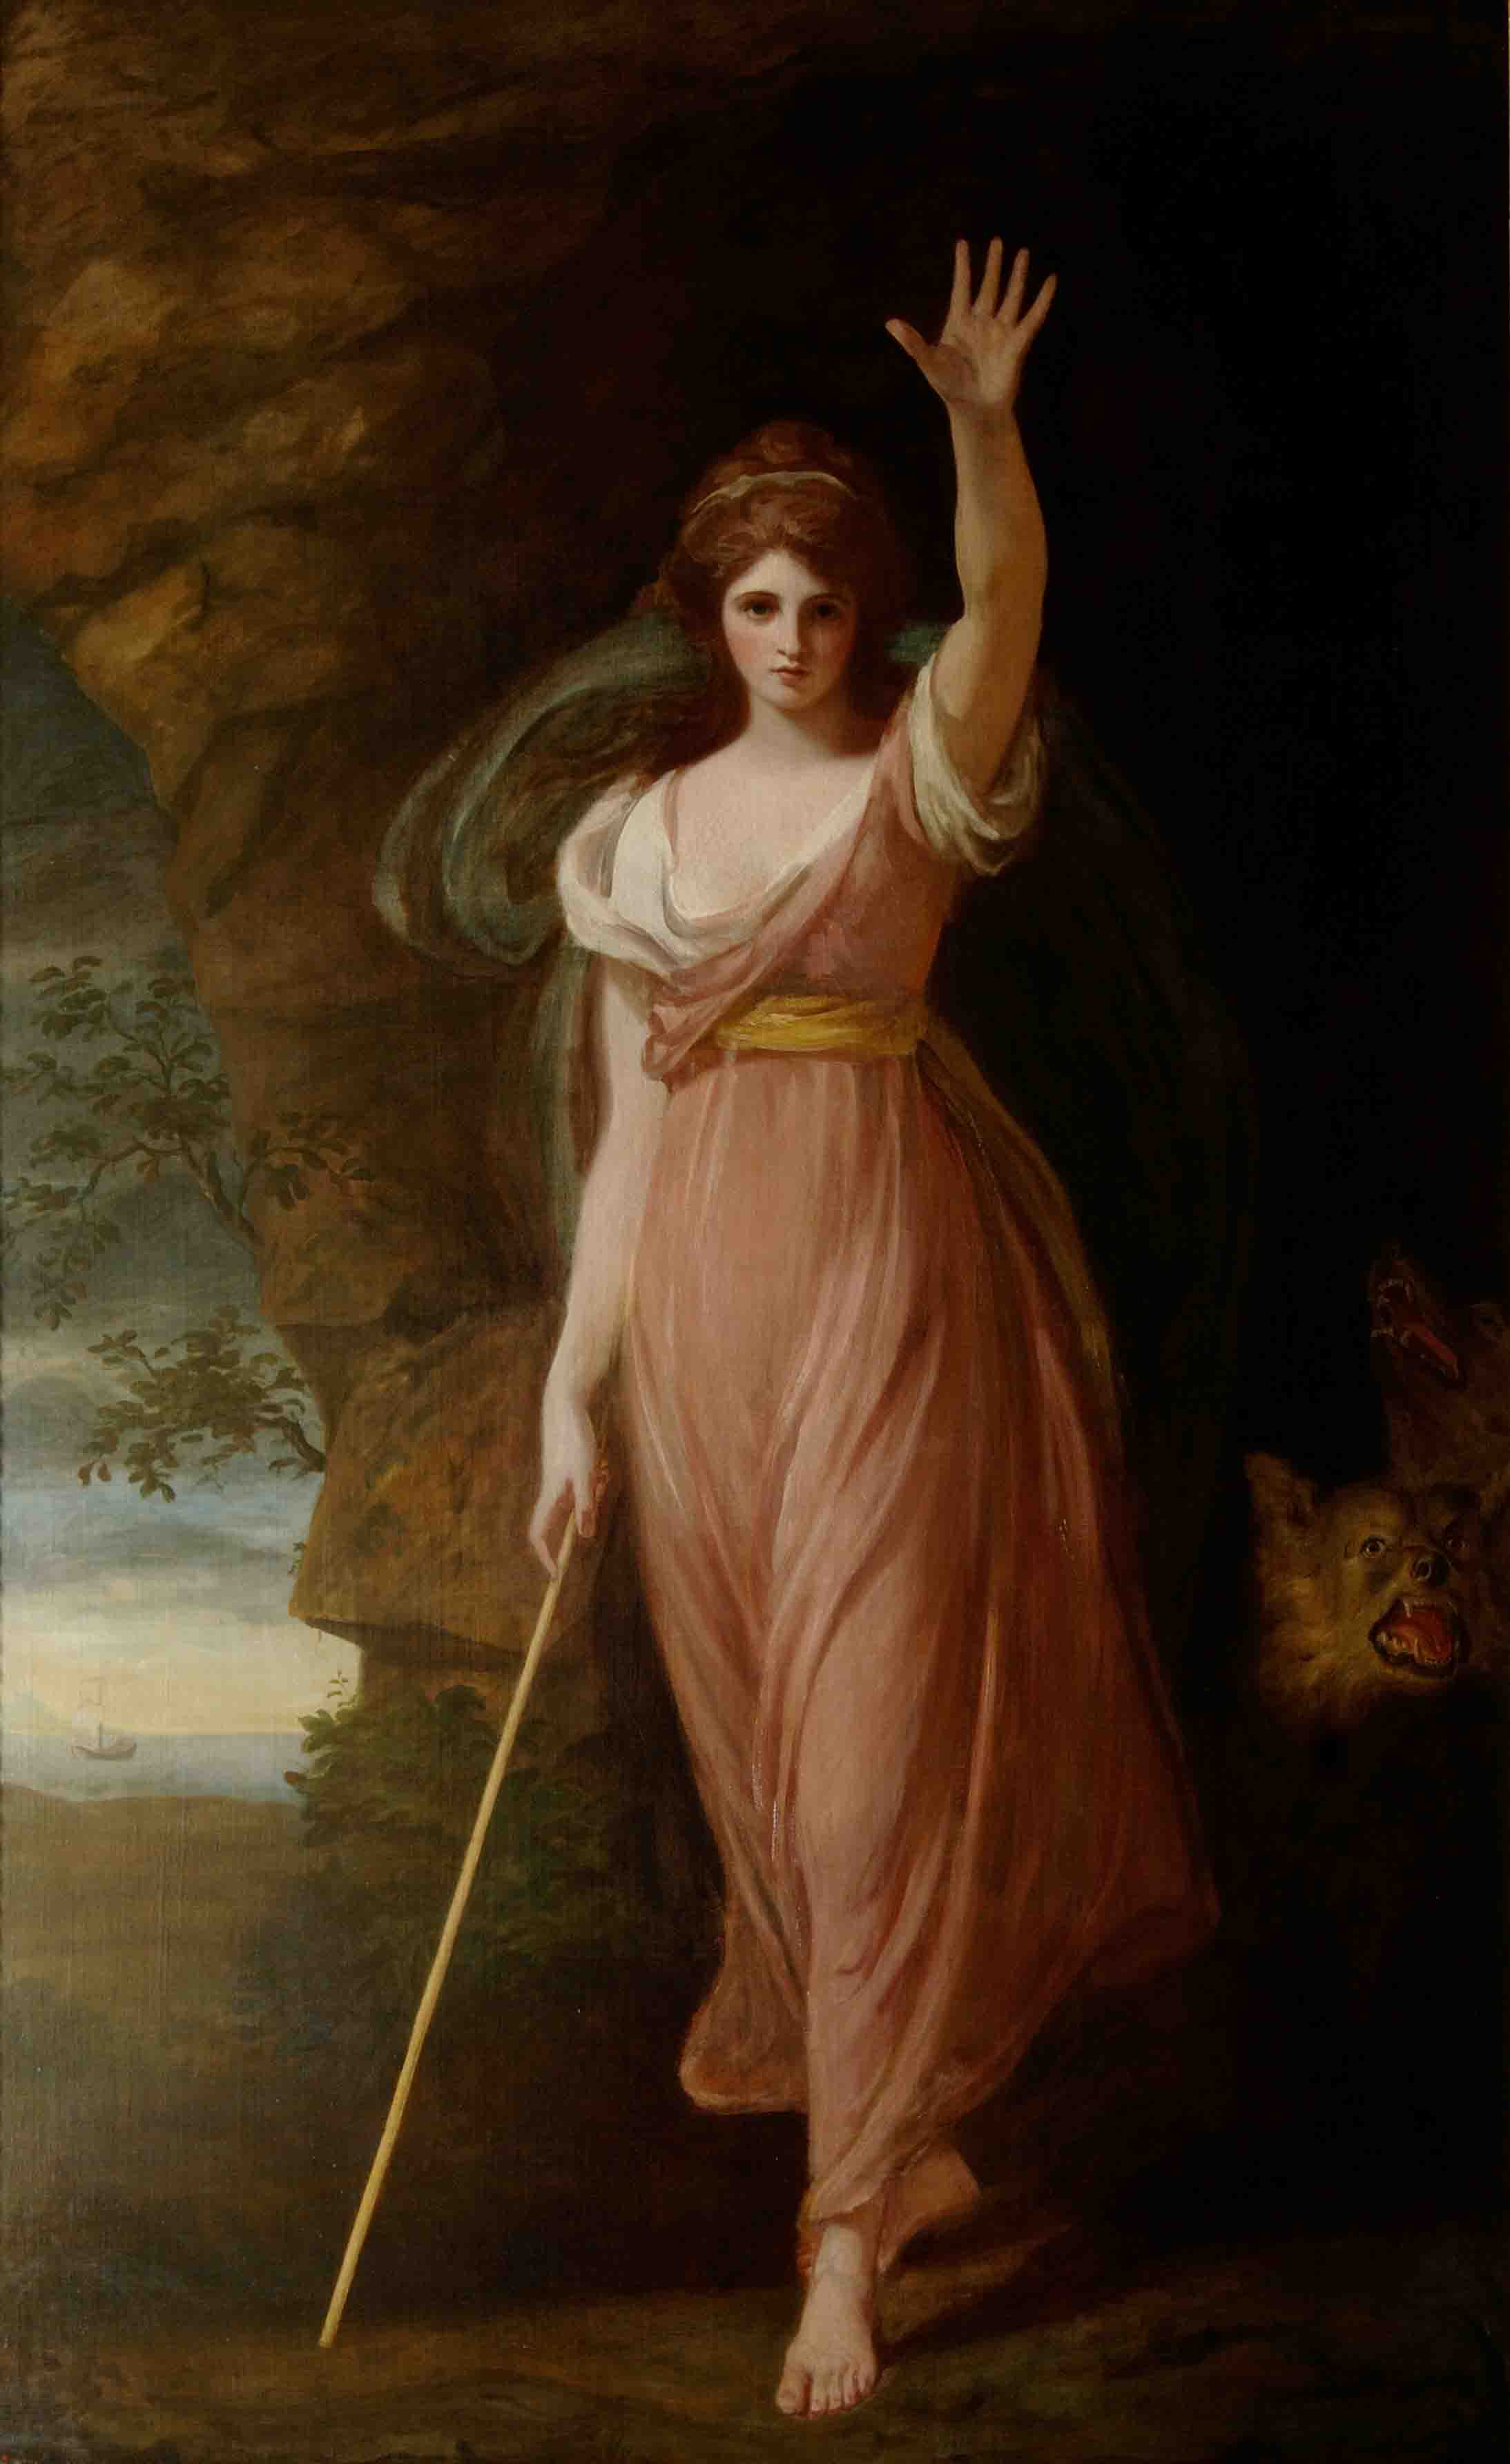 Emma as Circe, 1782, by George Romney © The National Trust, Waddesdon Manor